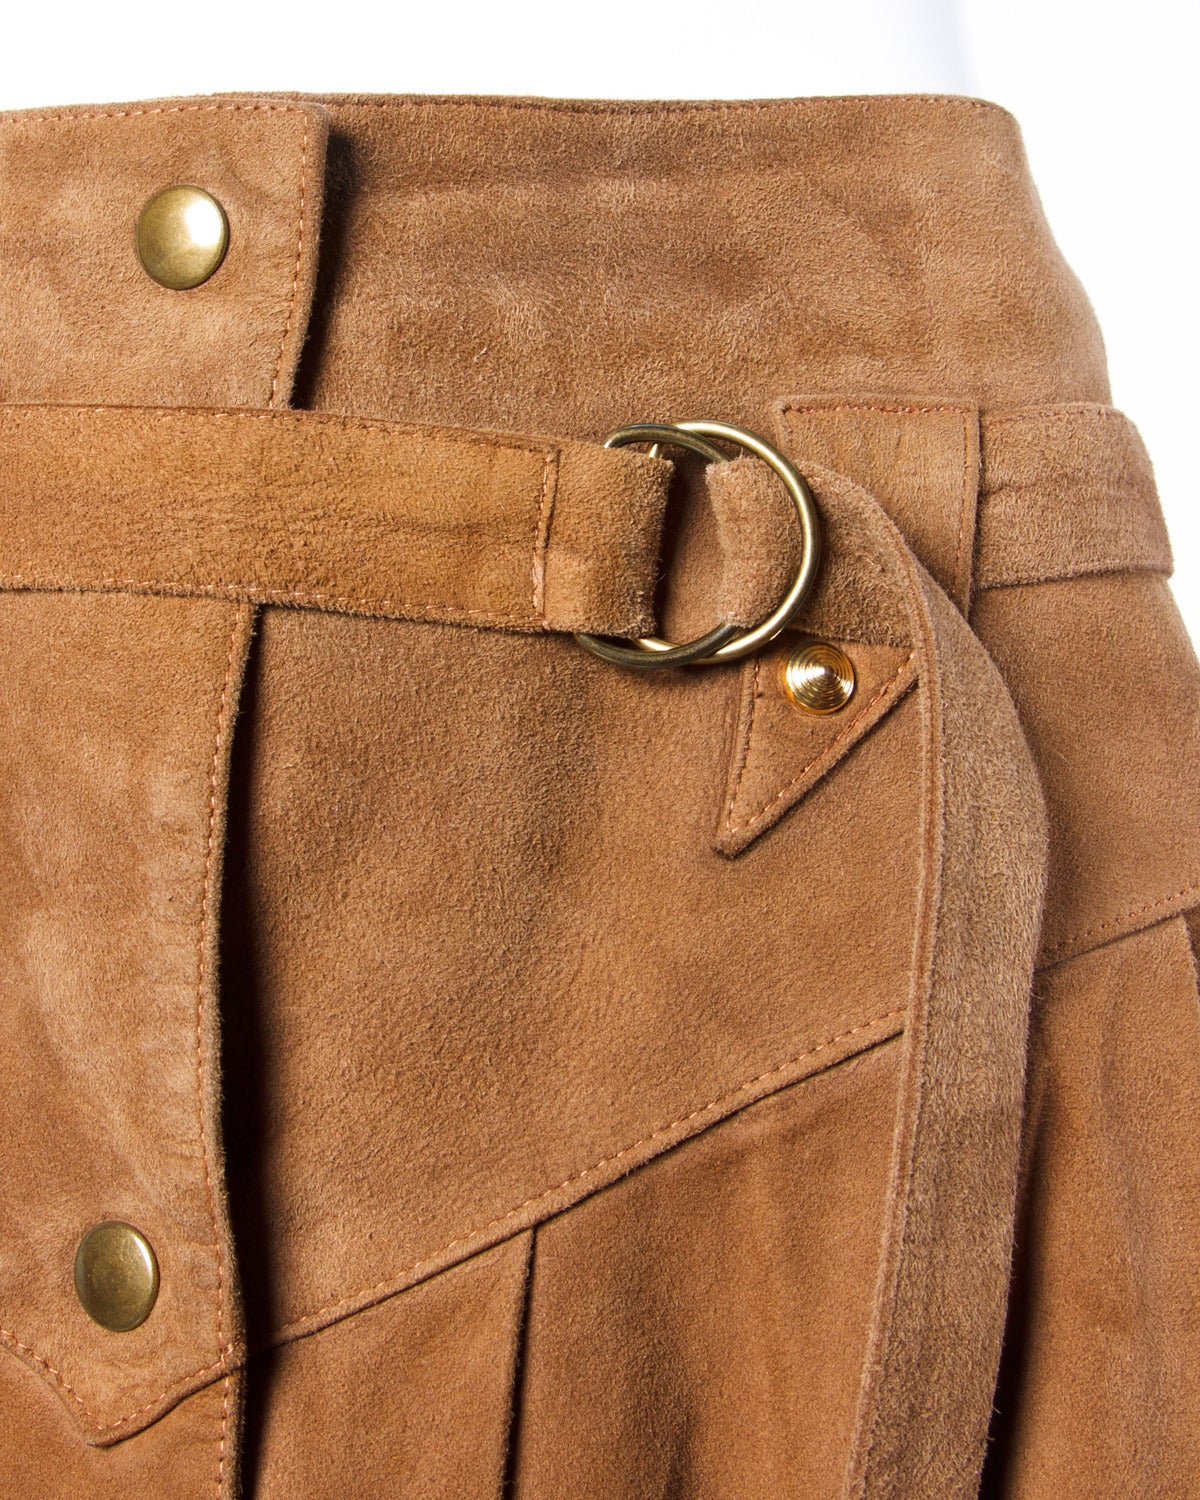 Reduced from $750. Vintage 1980s brown suede leather skirt by Claude Montana pour Ideal Cuir. Silver avant garde hardware and snap up front.  Details:  Fully Lined Attached Matching Belt Front Snap Closure Color: Brown Fabric: Suede